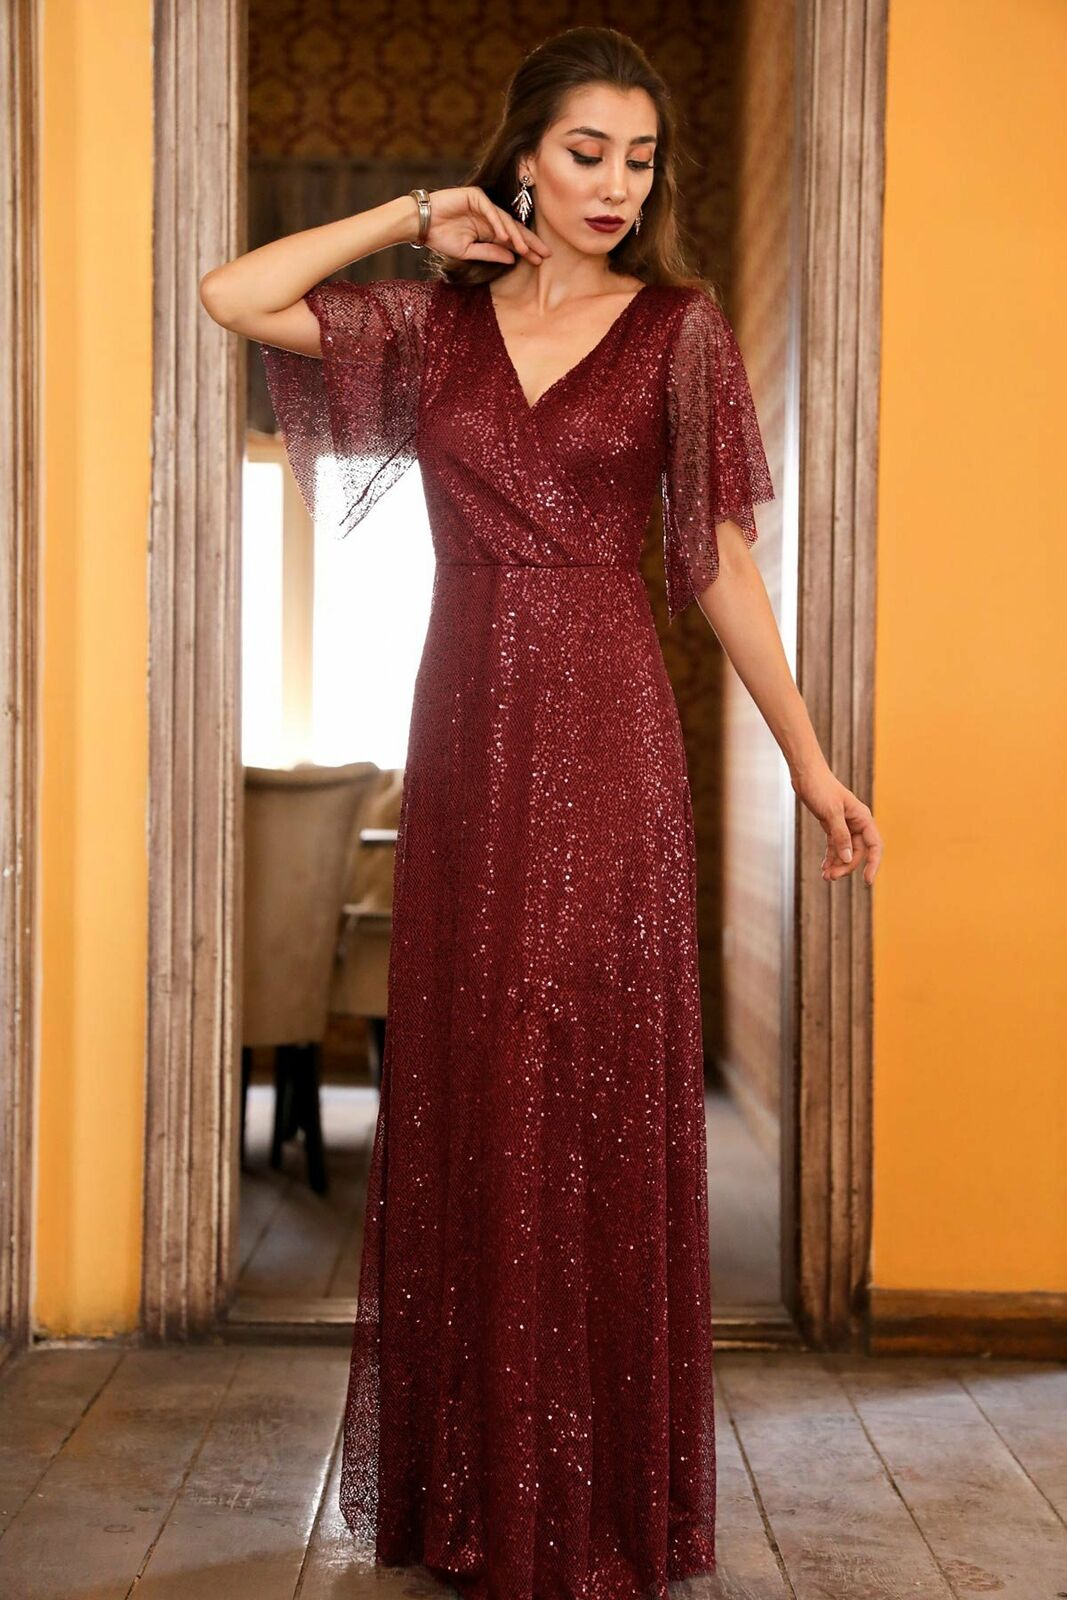 Sequined Claret Red Evening Dress